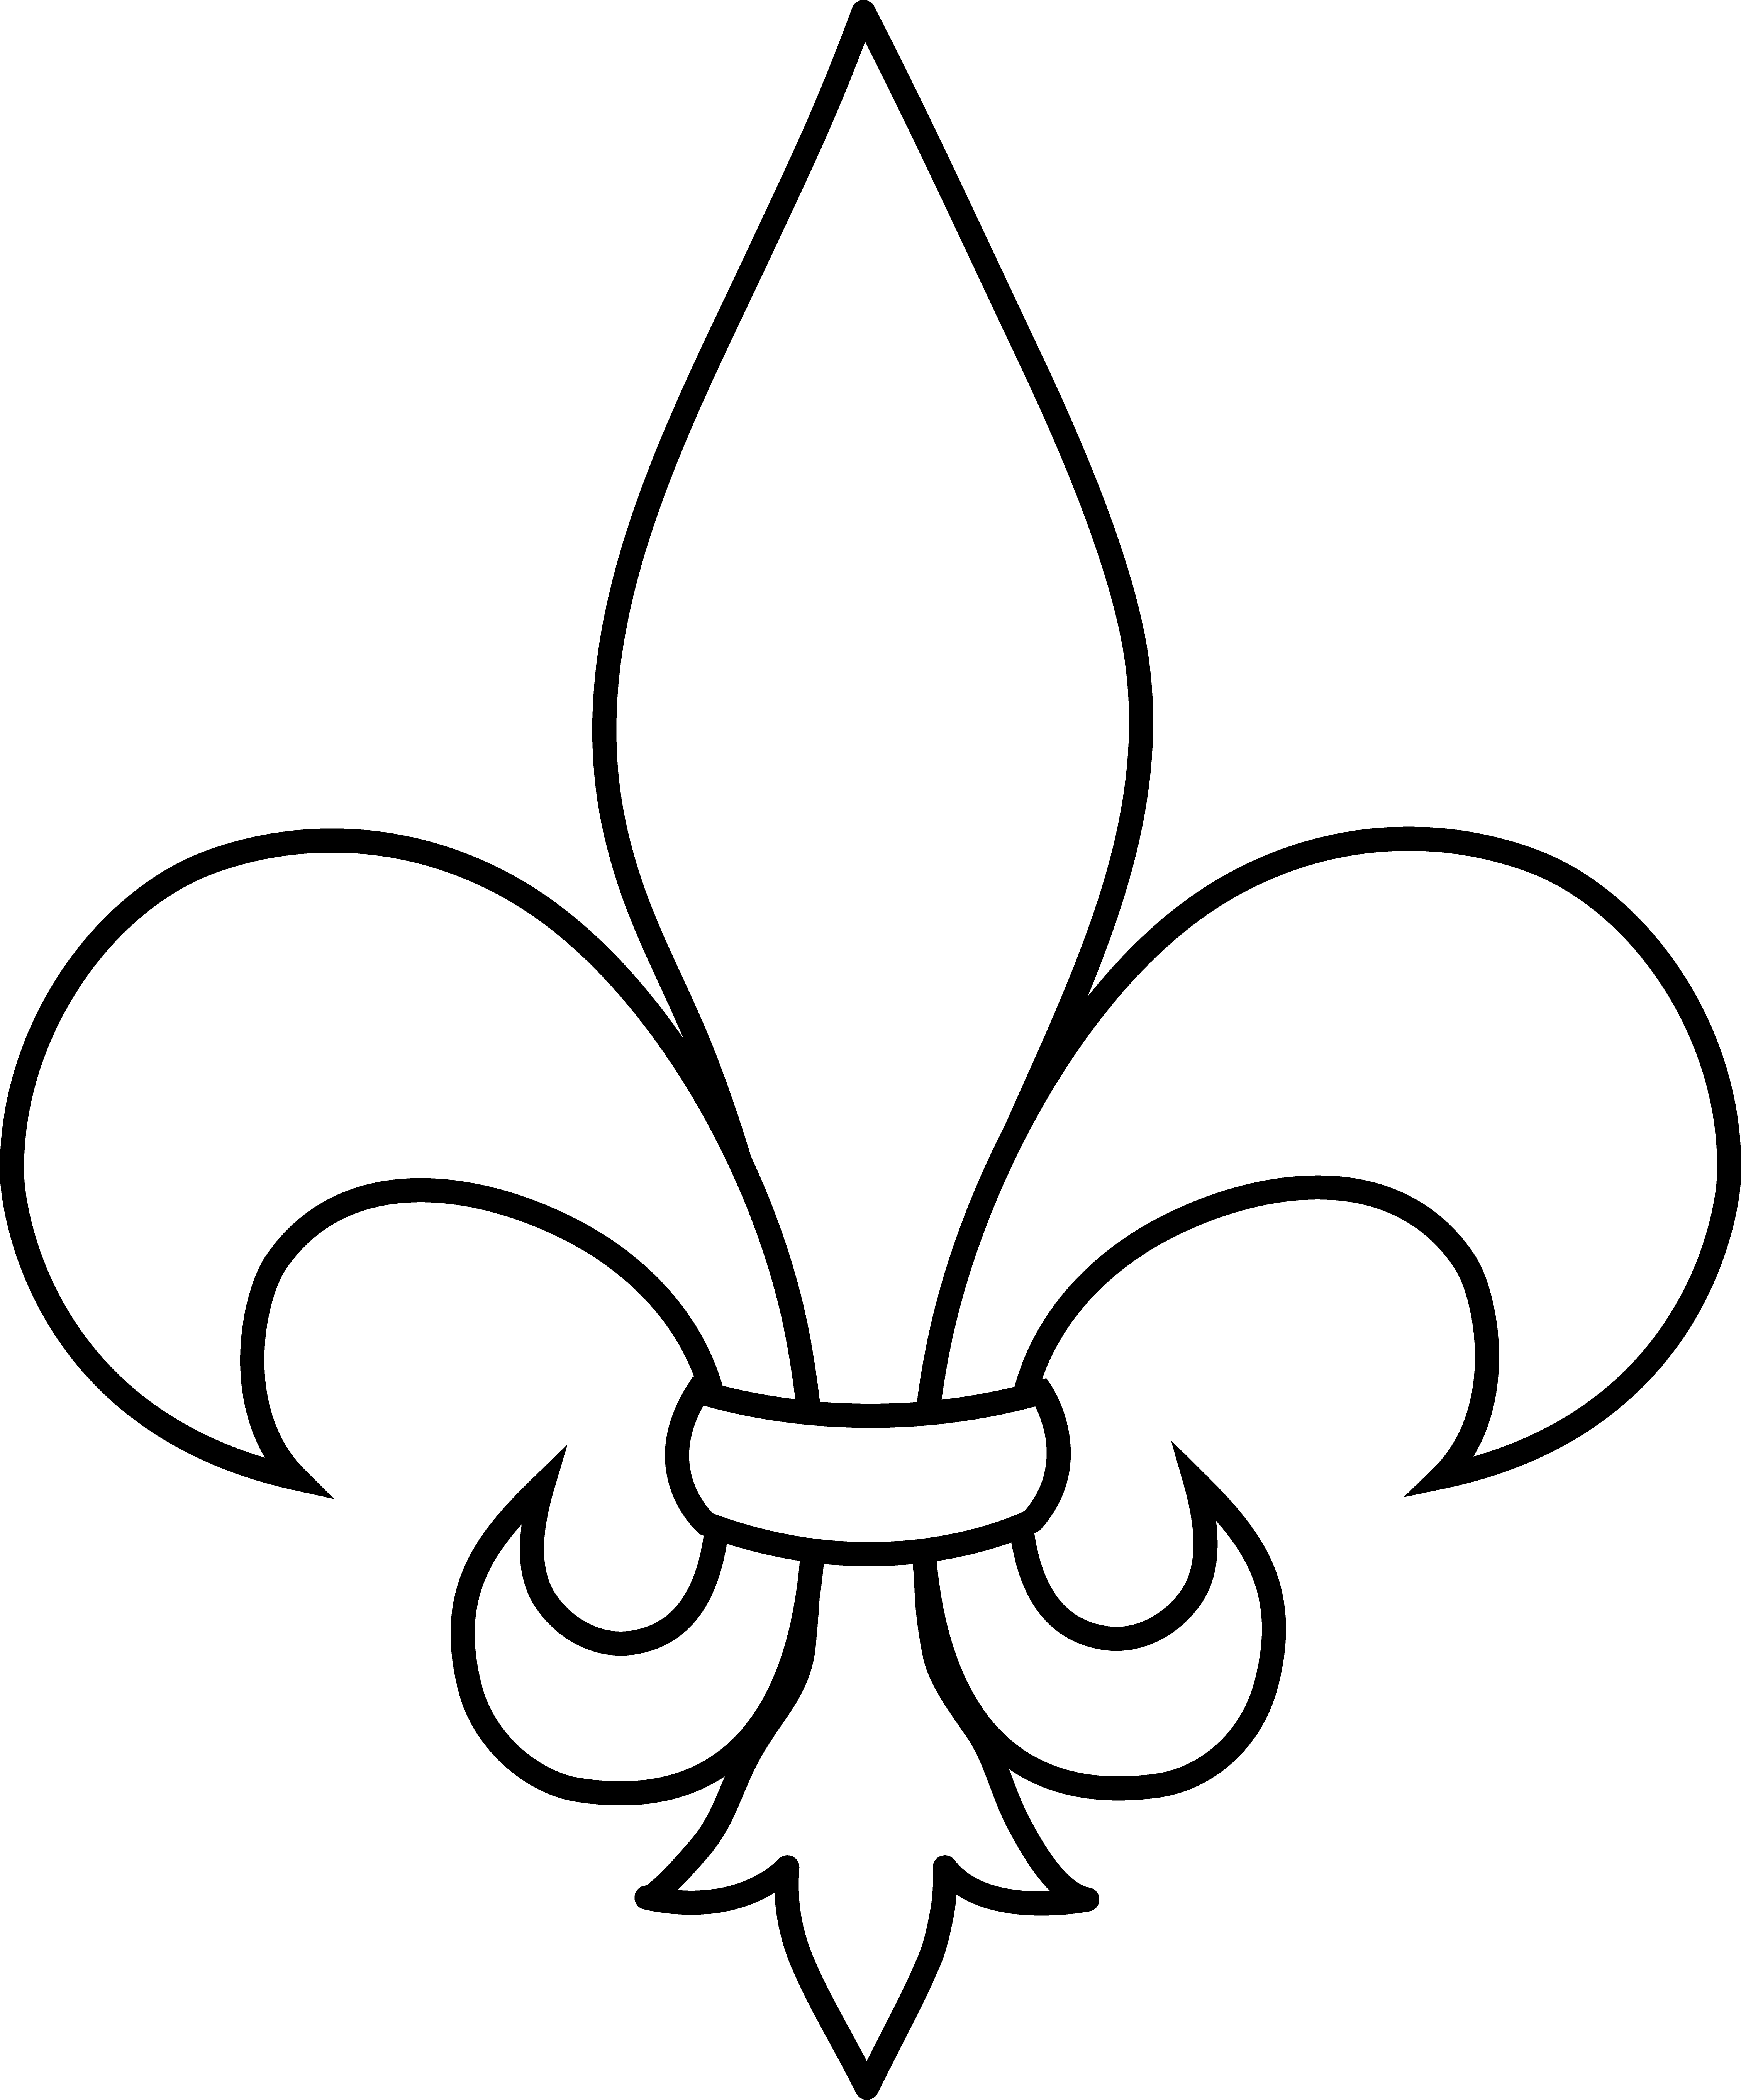 frrench free clip art | Black and White Fleur De Lis Outline - Free ... picture royalty free stock